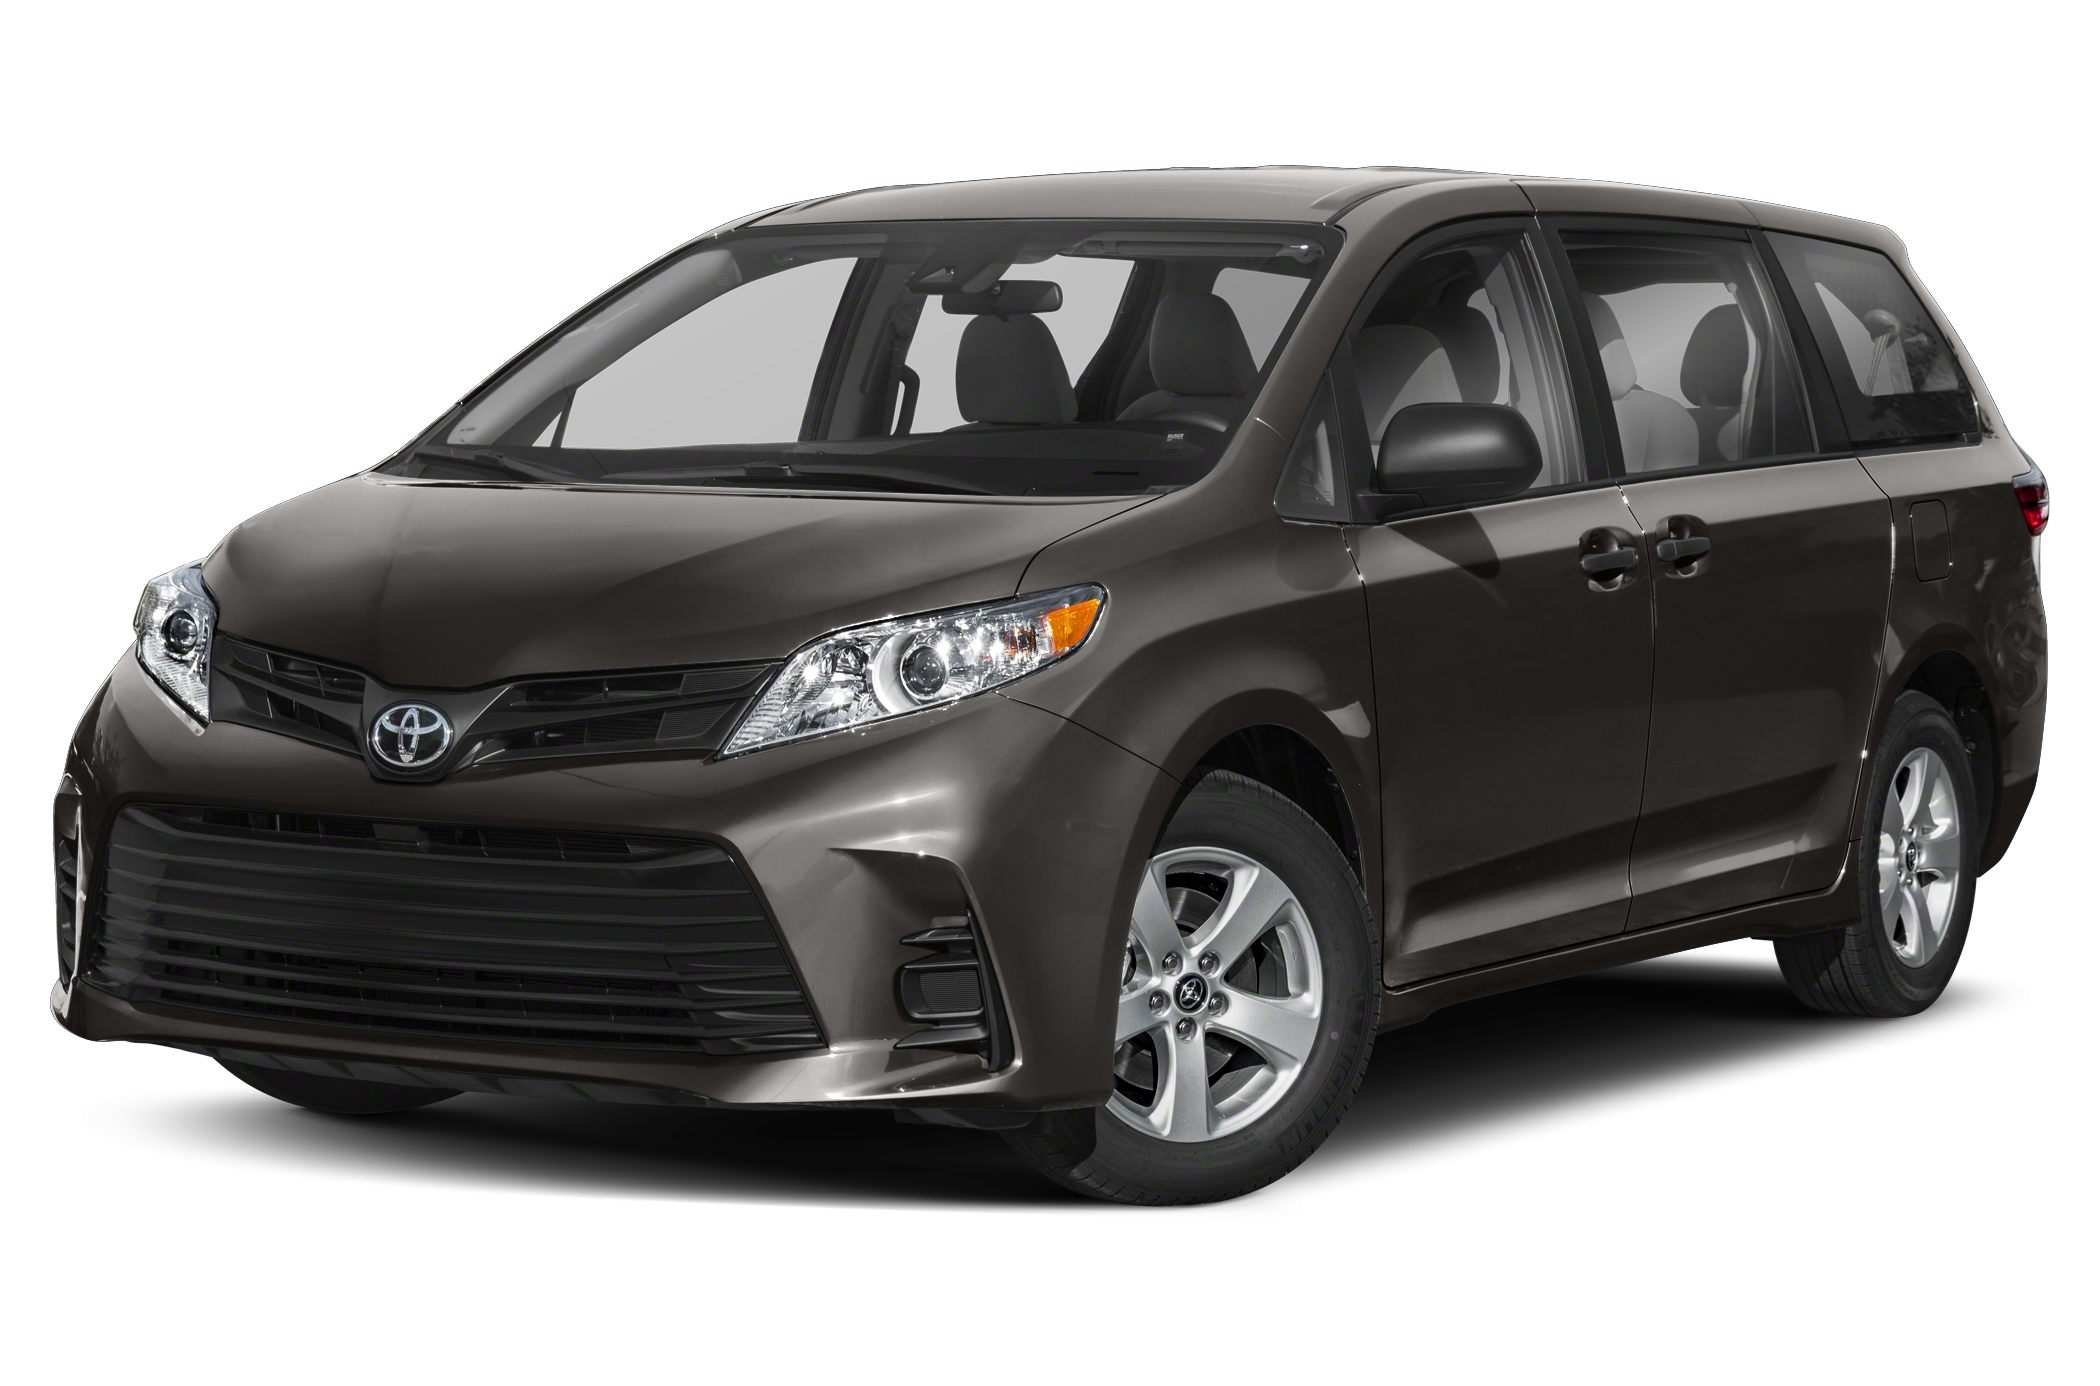 60 All New 2020 Toyota Sienna Photos